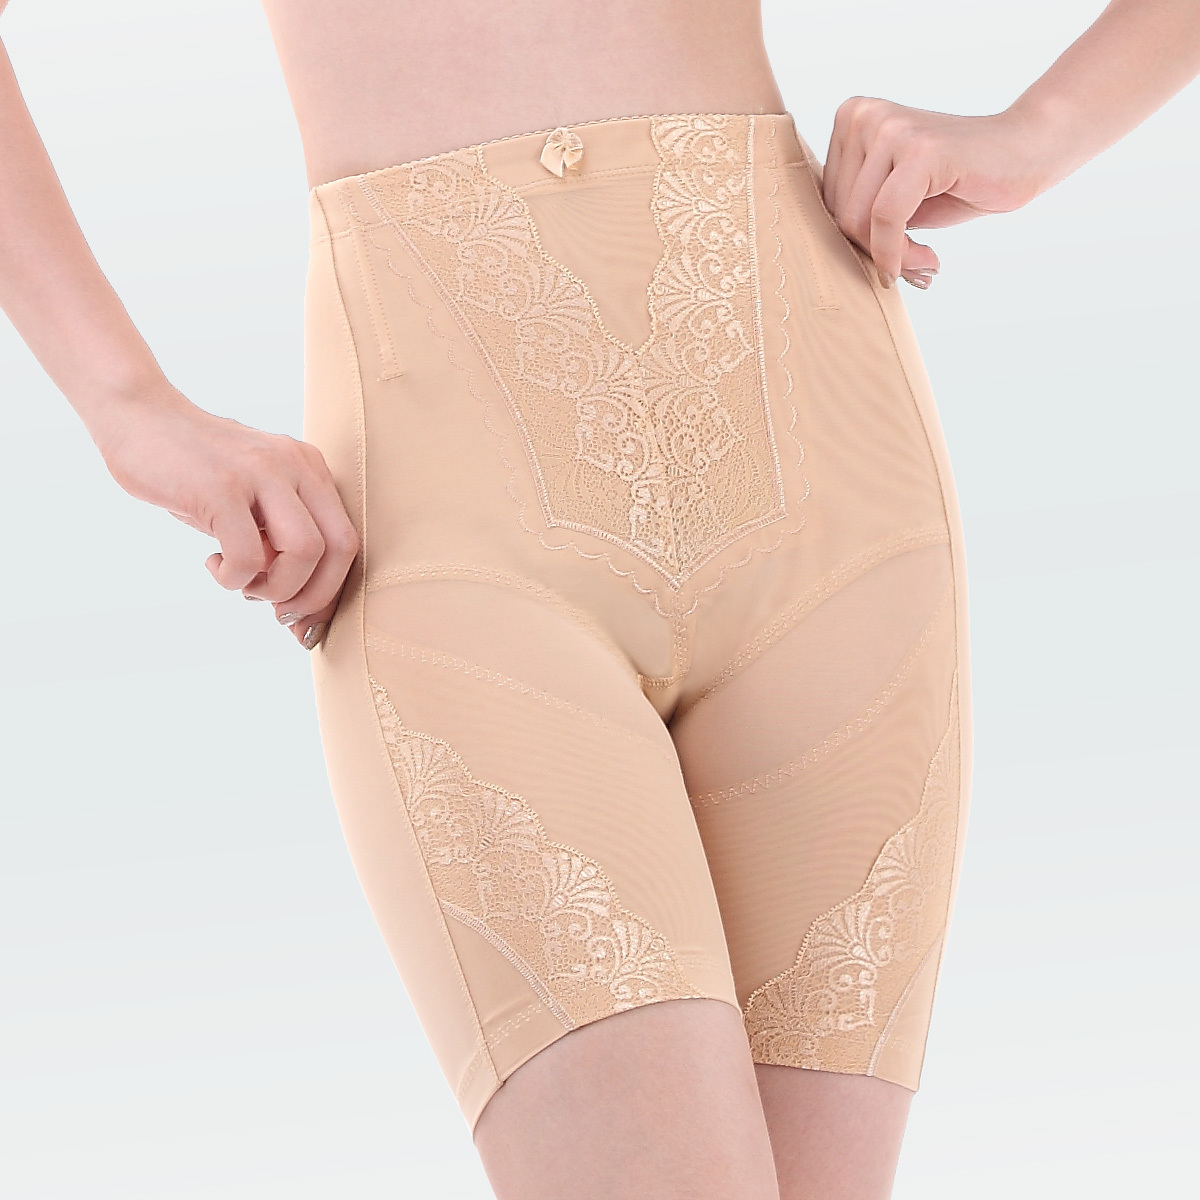 Puerperal high waist abdomen drawing butt-lifting bottom stovepipe panties female corset pants beauty care body shaping pants